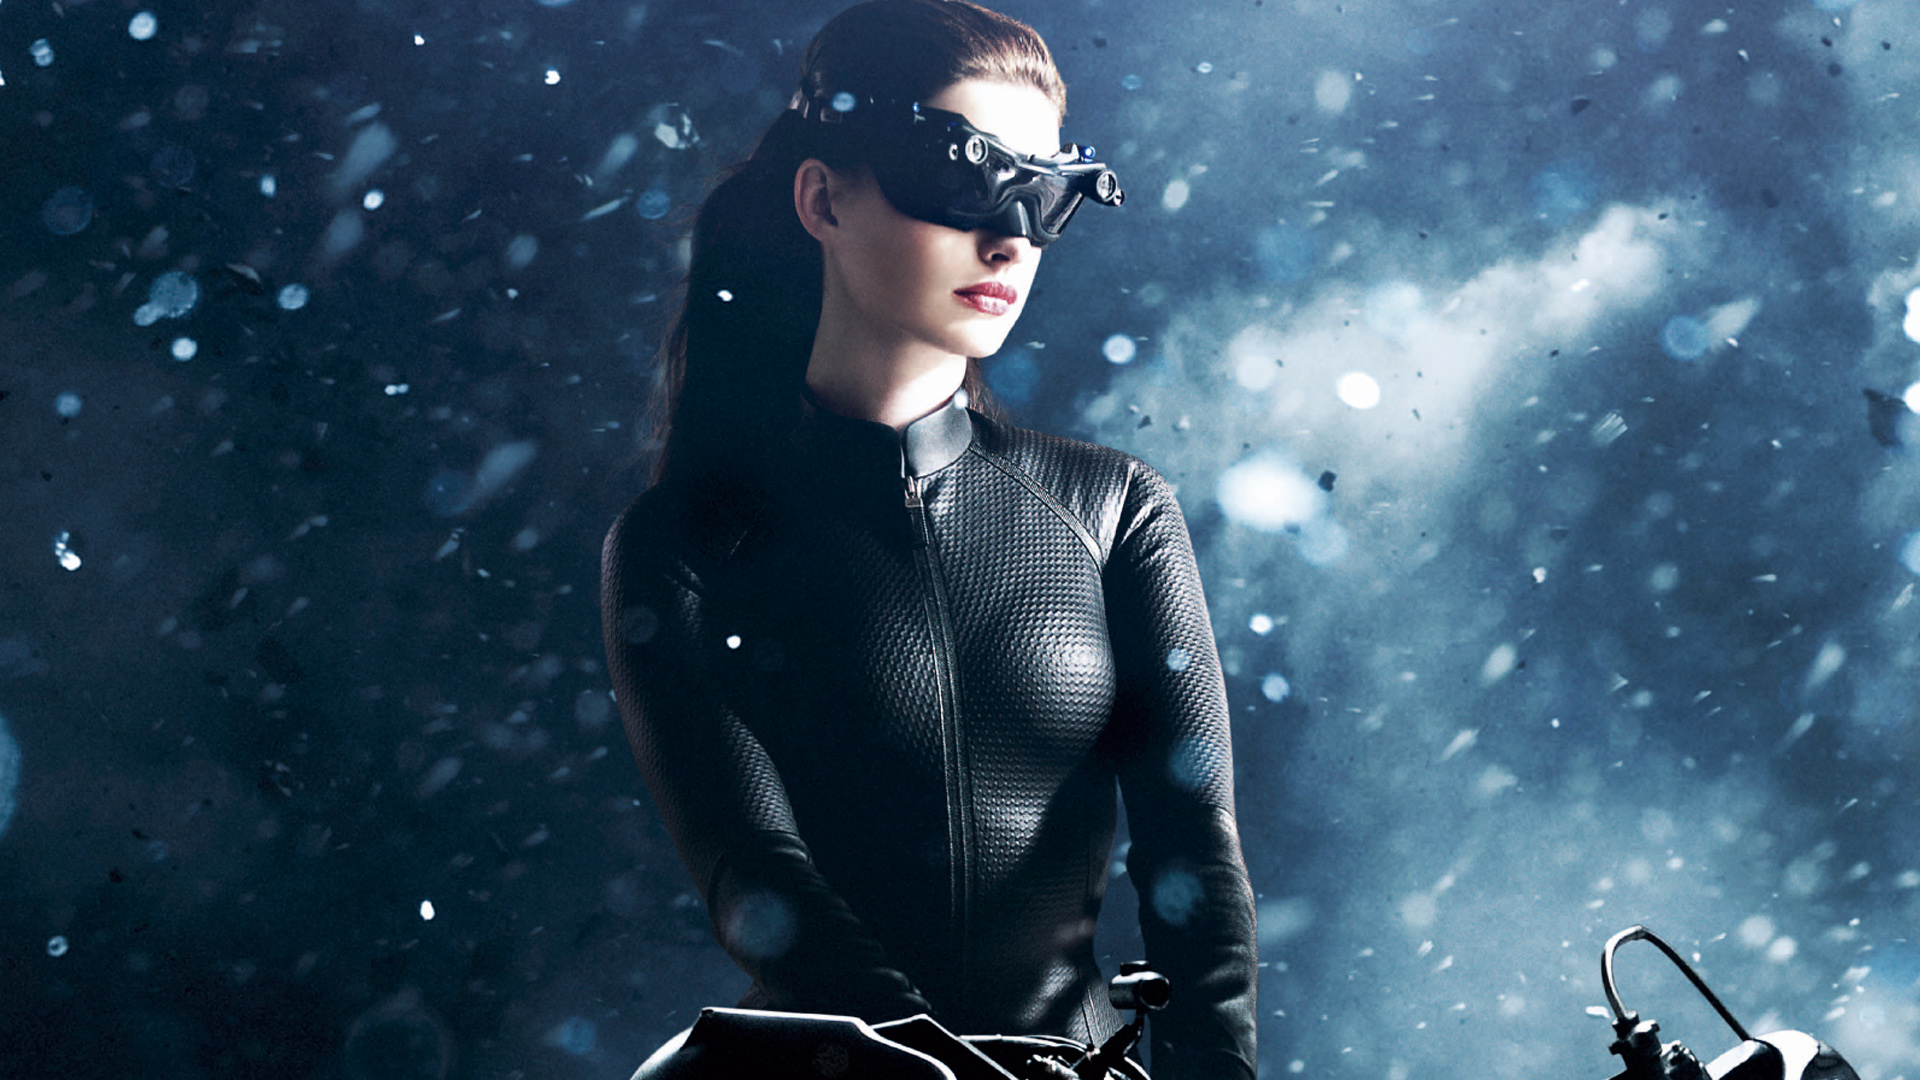 Catwoman Anne Hathaway 2304.98 Kb